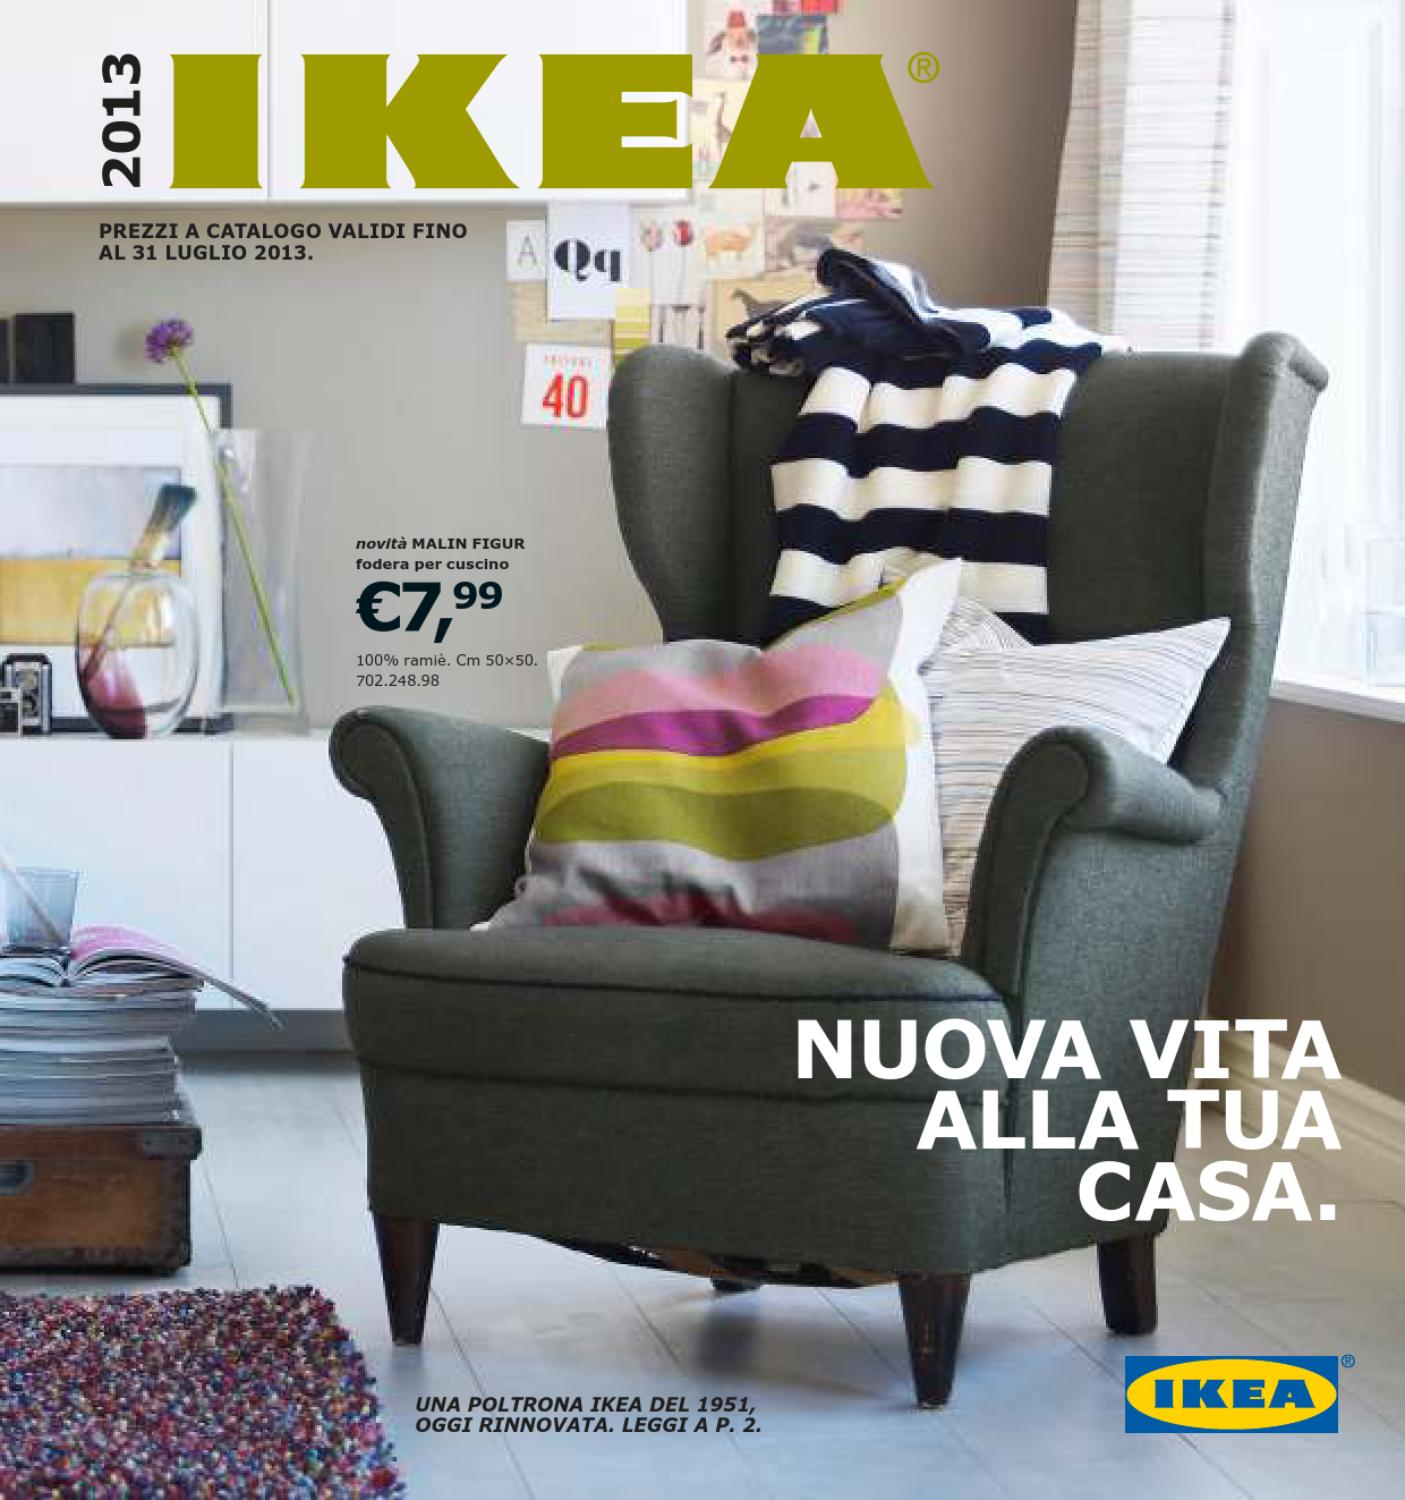 Ikea catalogo italia 2013 by issuu - Catalogo ikea 2015 italia ...